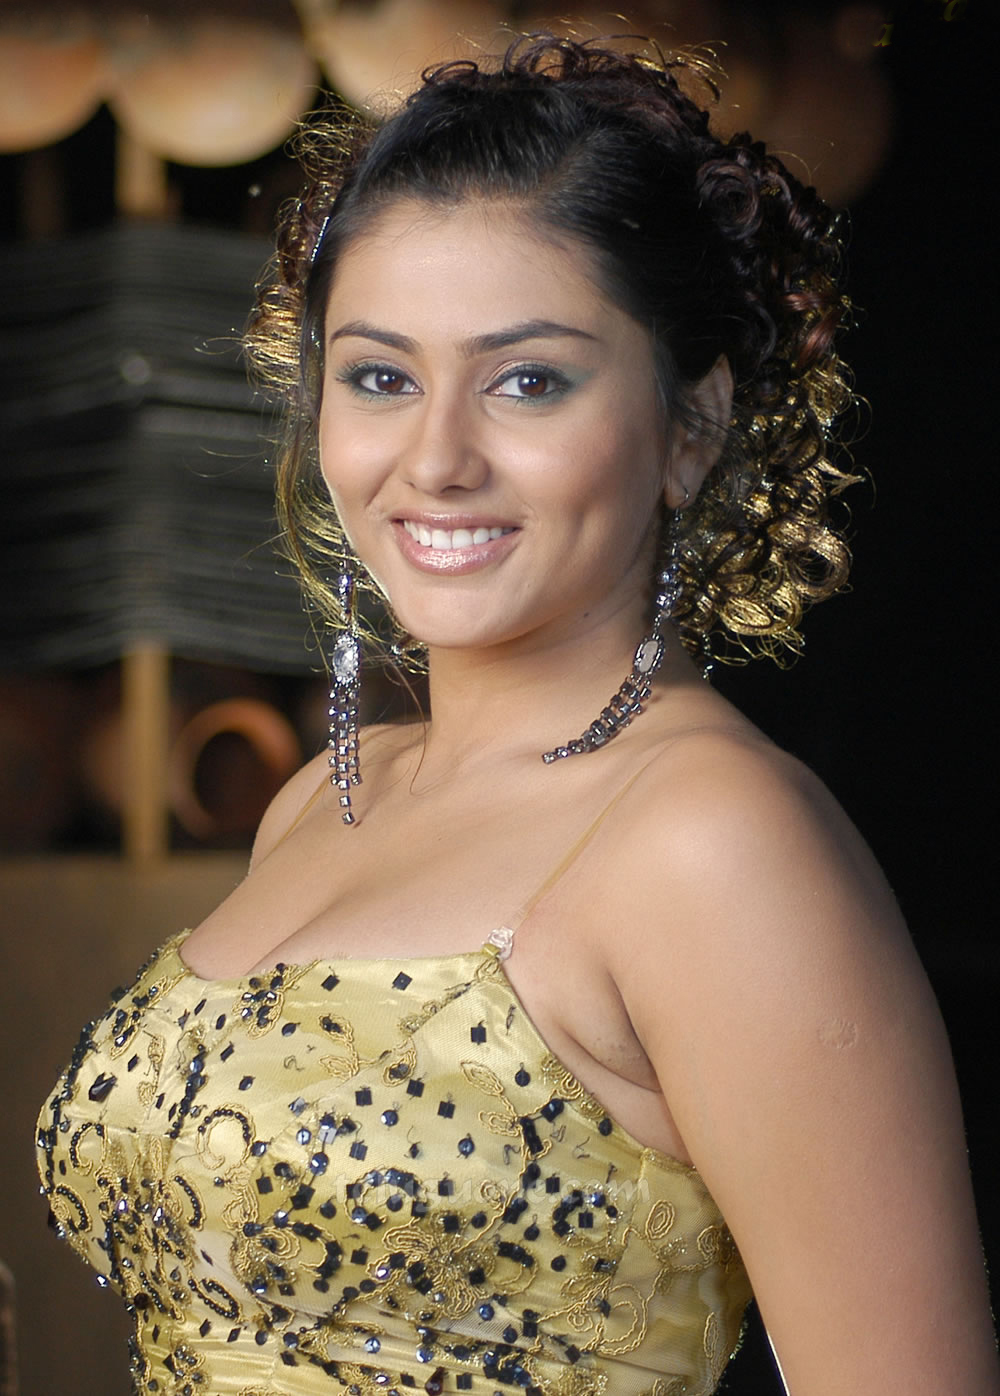 Hq Wallpapers Of Indian Film Actress Hot And Sexy Namitha -7910